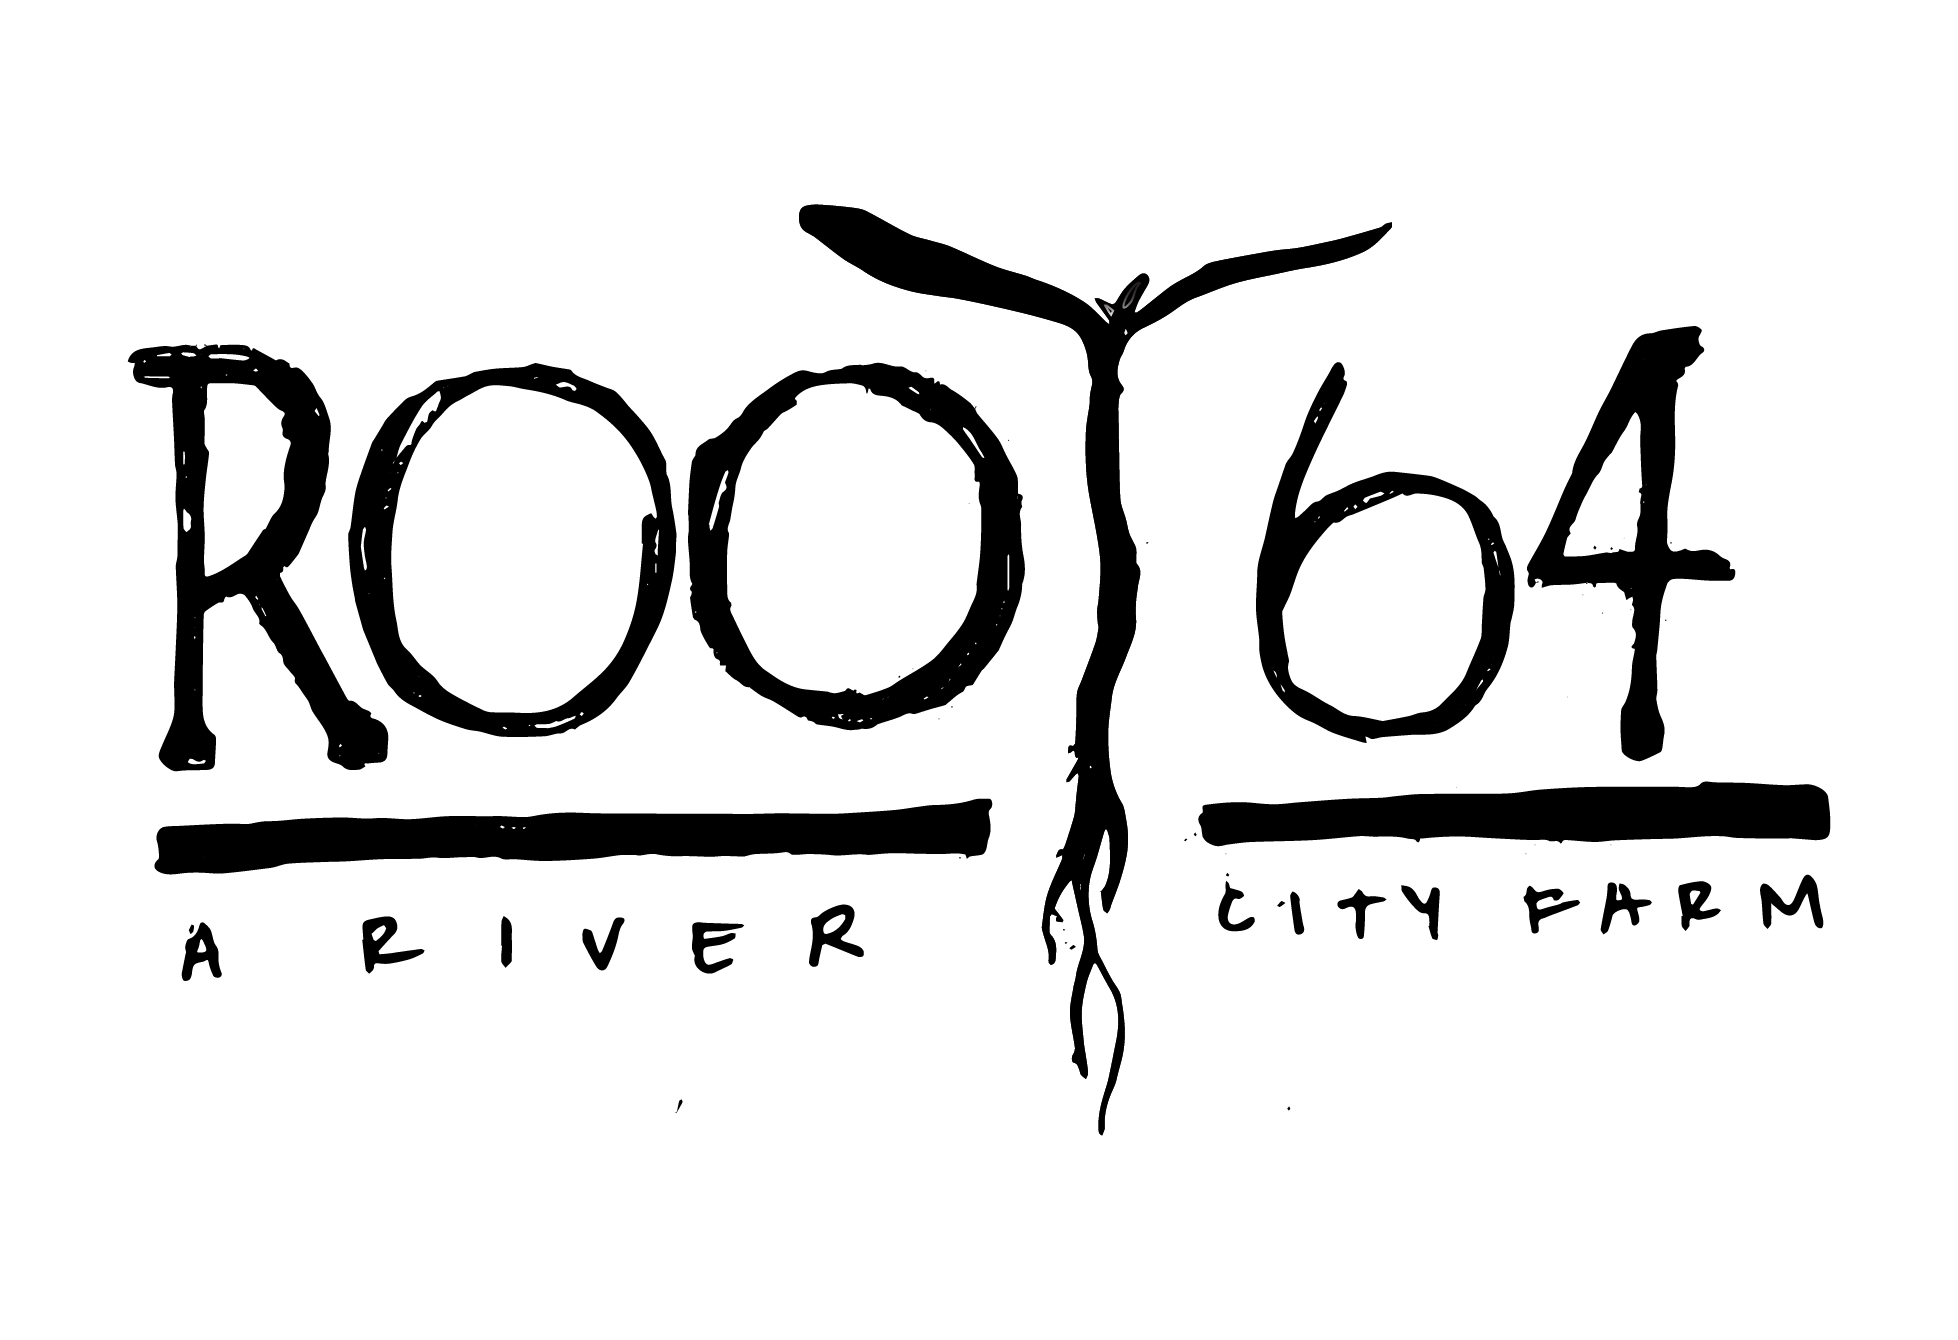 Root_64_Logo_Refinements_20180427_01_bw.png